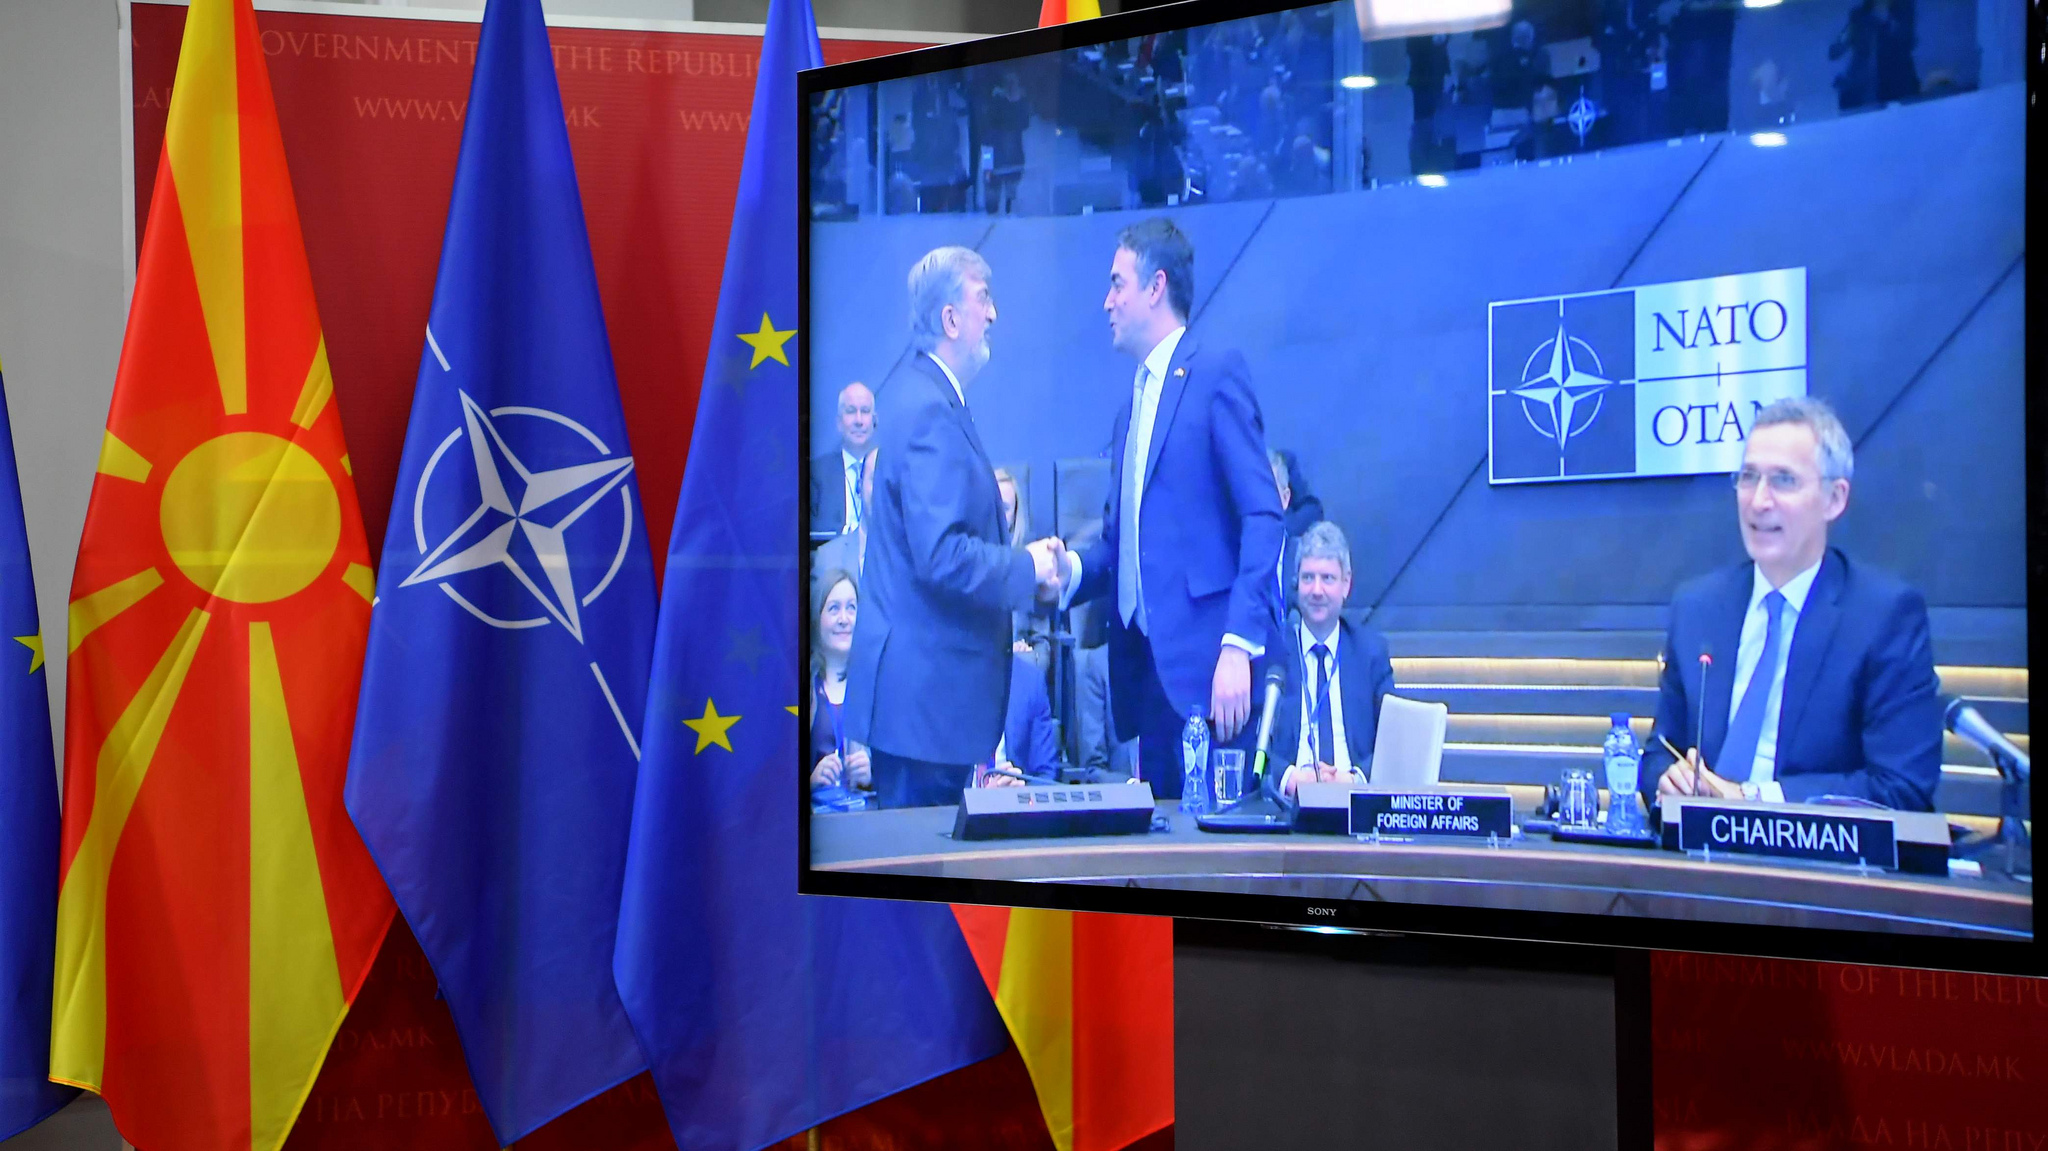 Skopje's expectations following the signature of NATO Accession Protocol